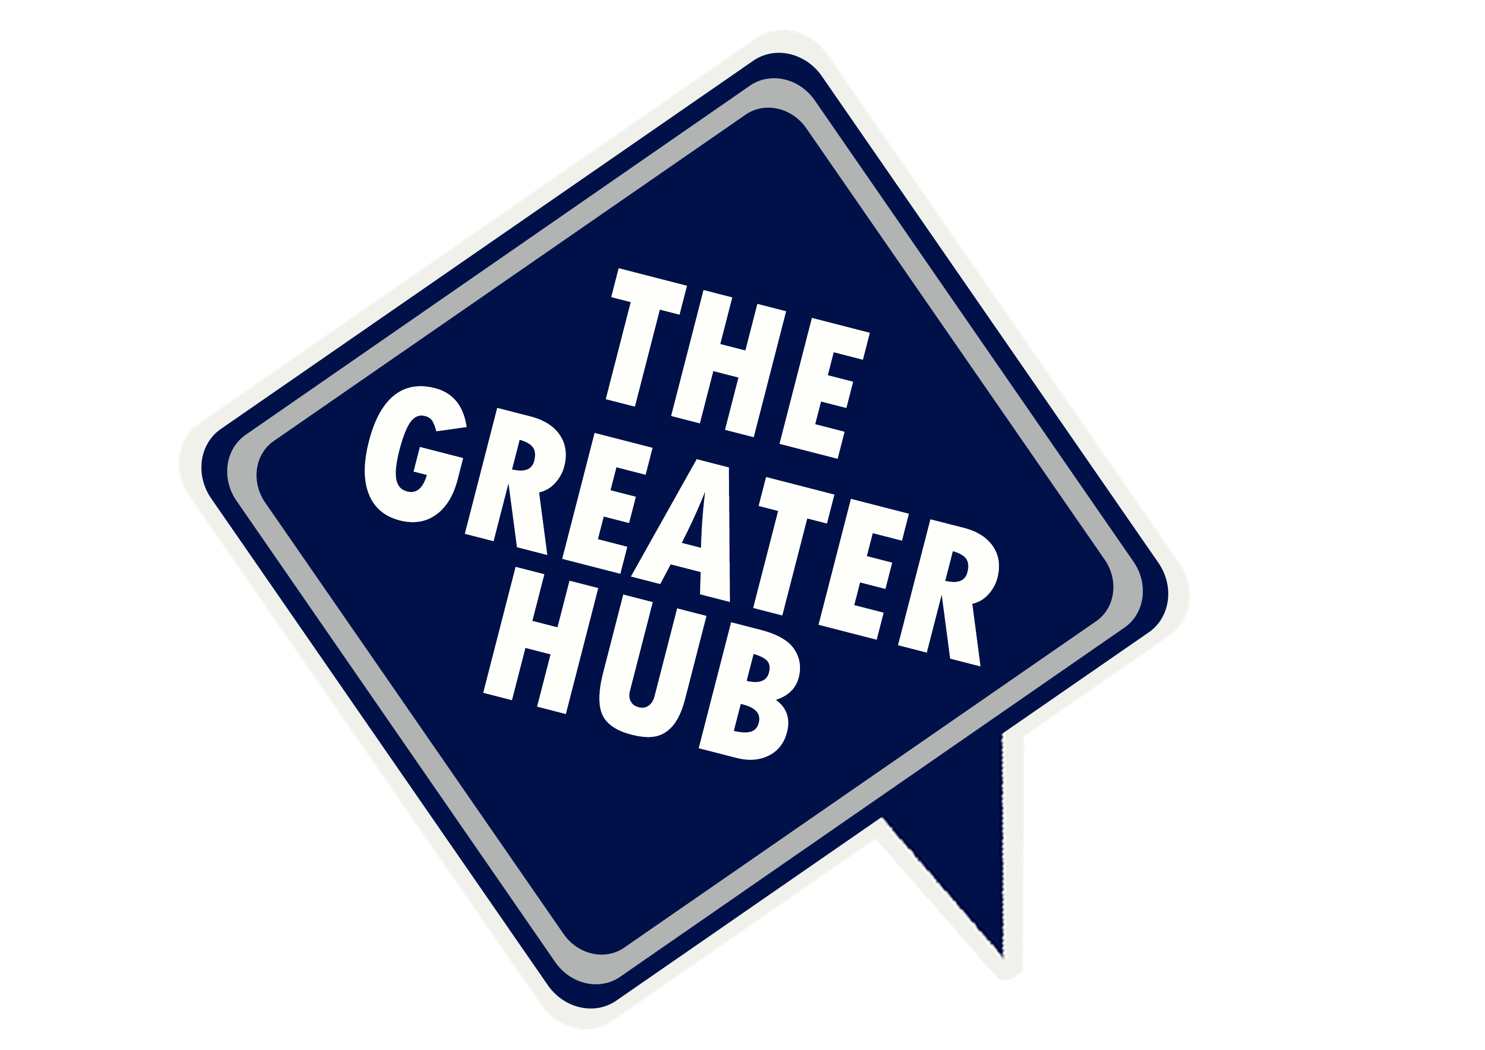 The Greater Hub